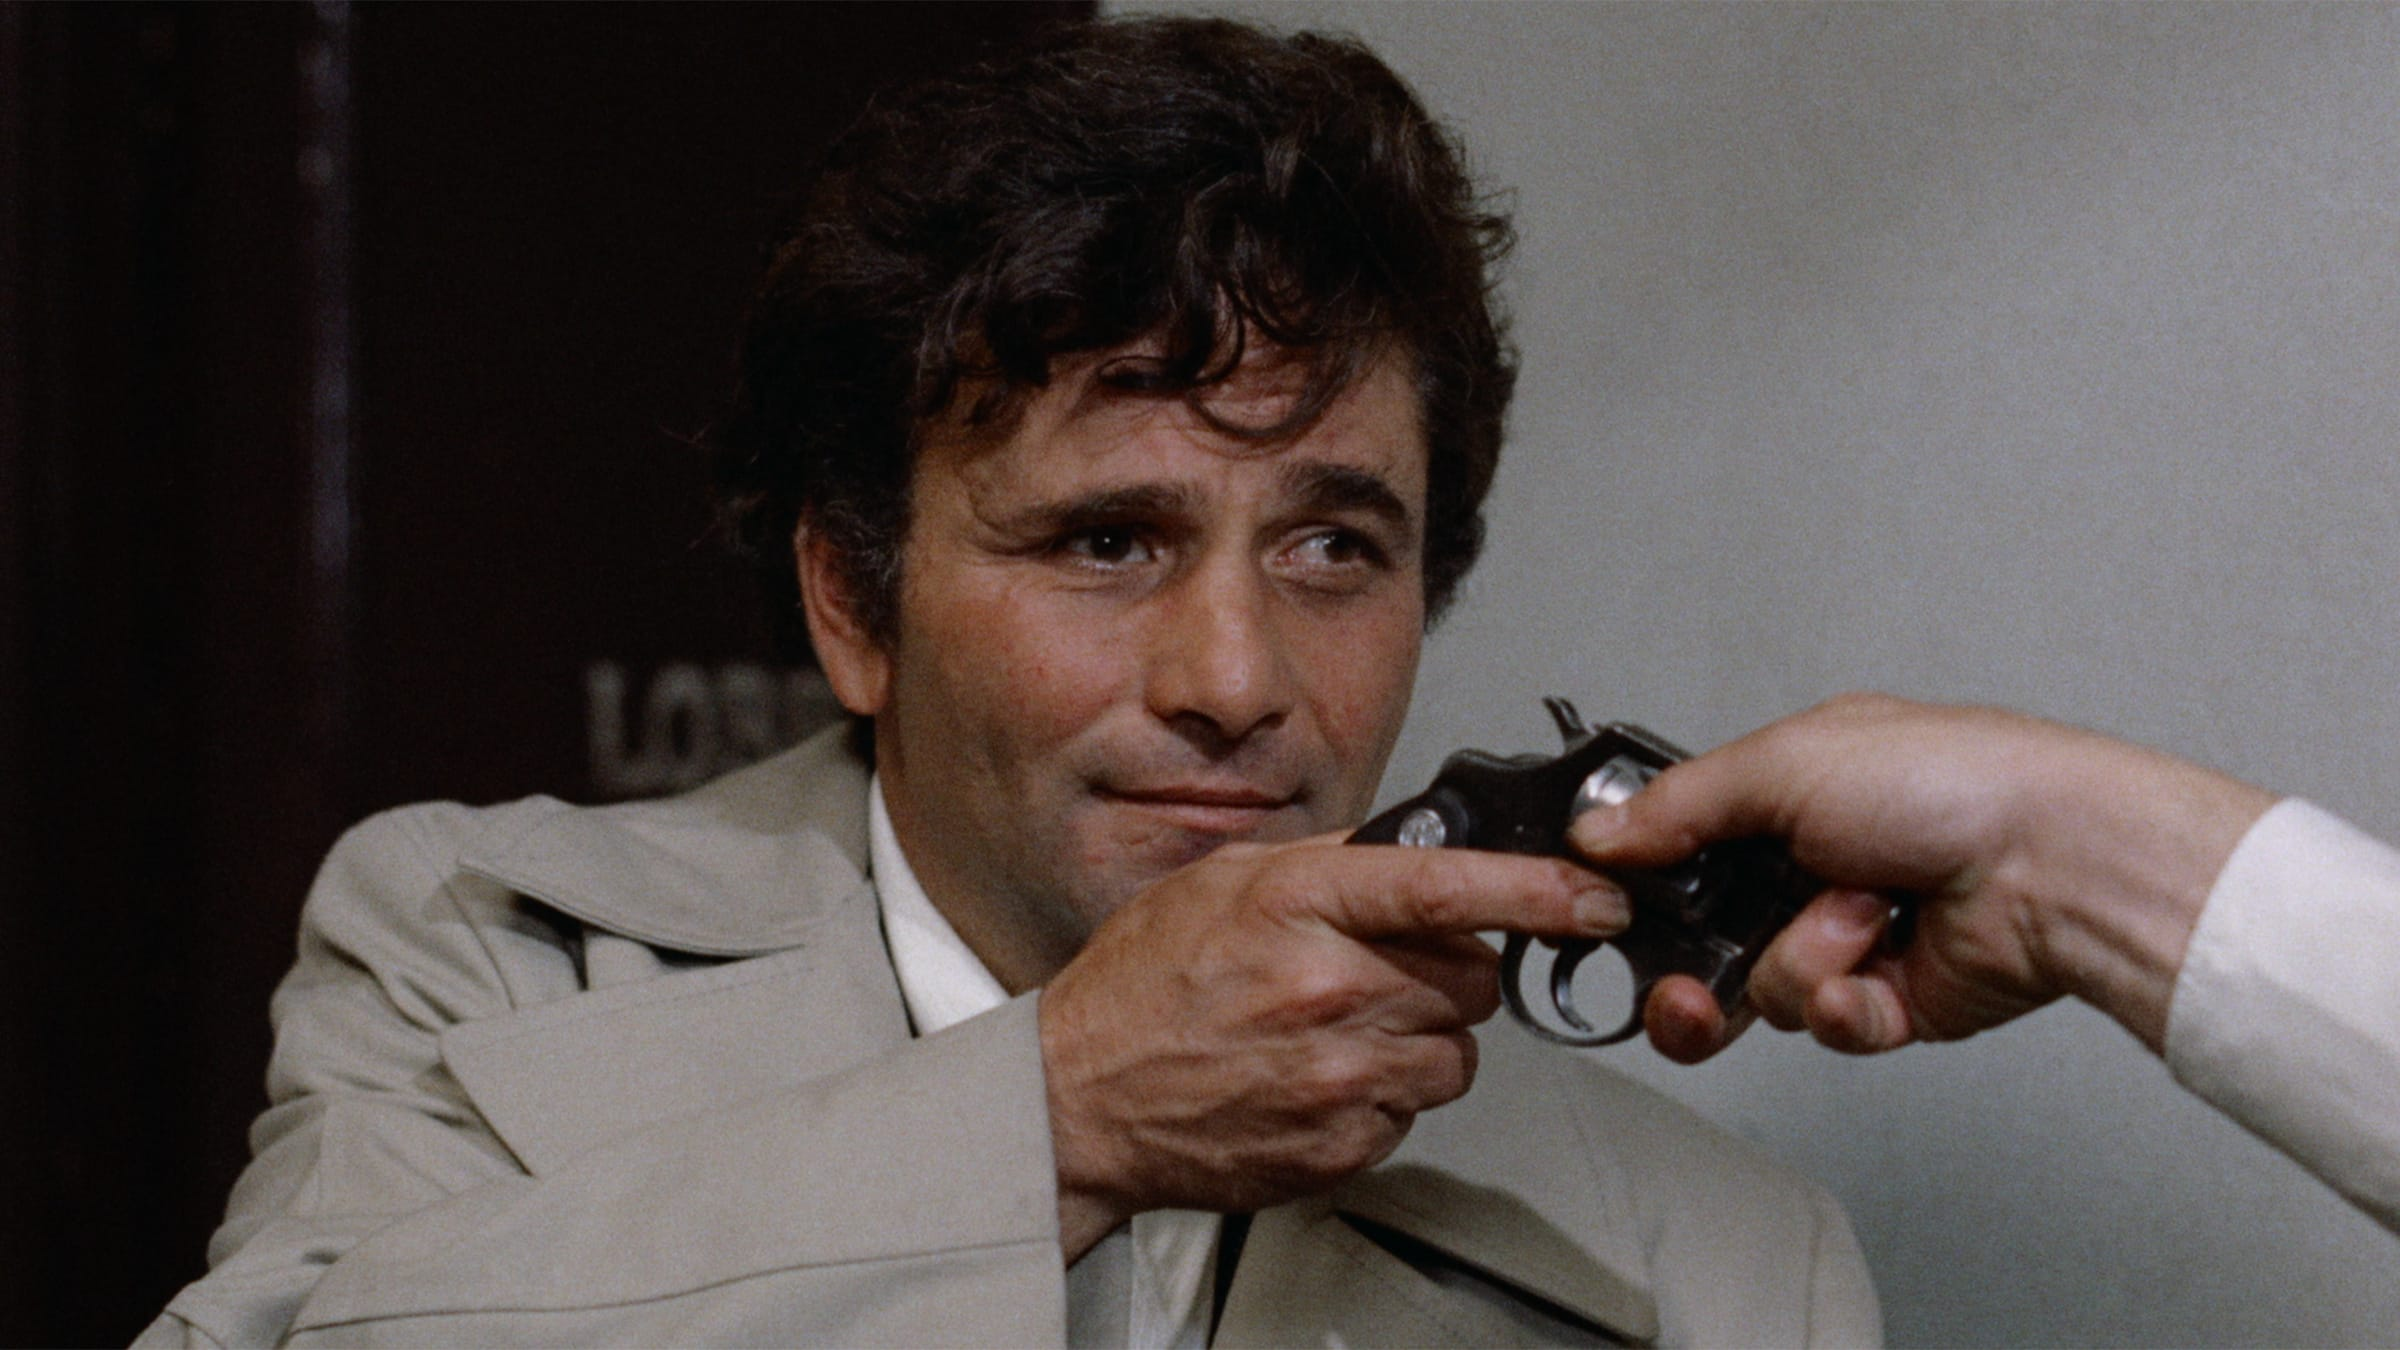 10 Things I Learned: <em>Mikey and Nicky</em>